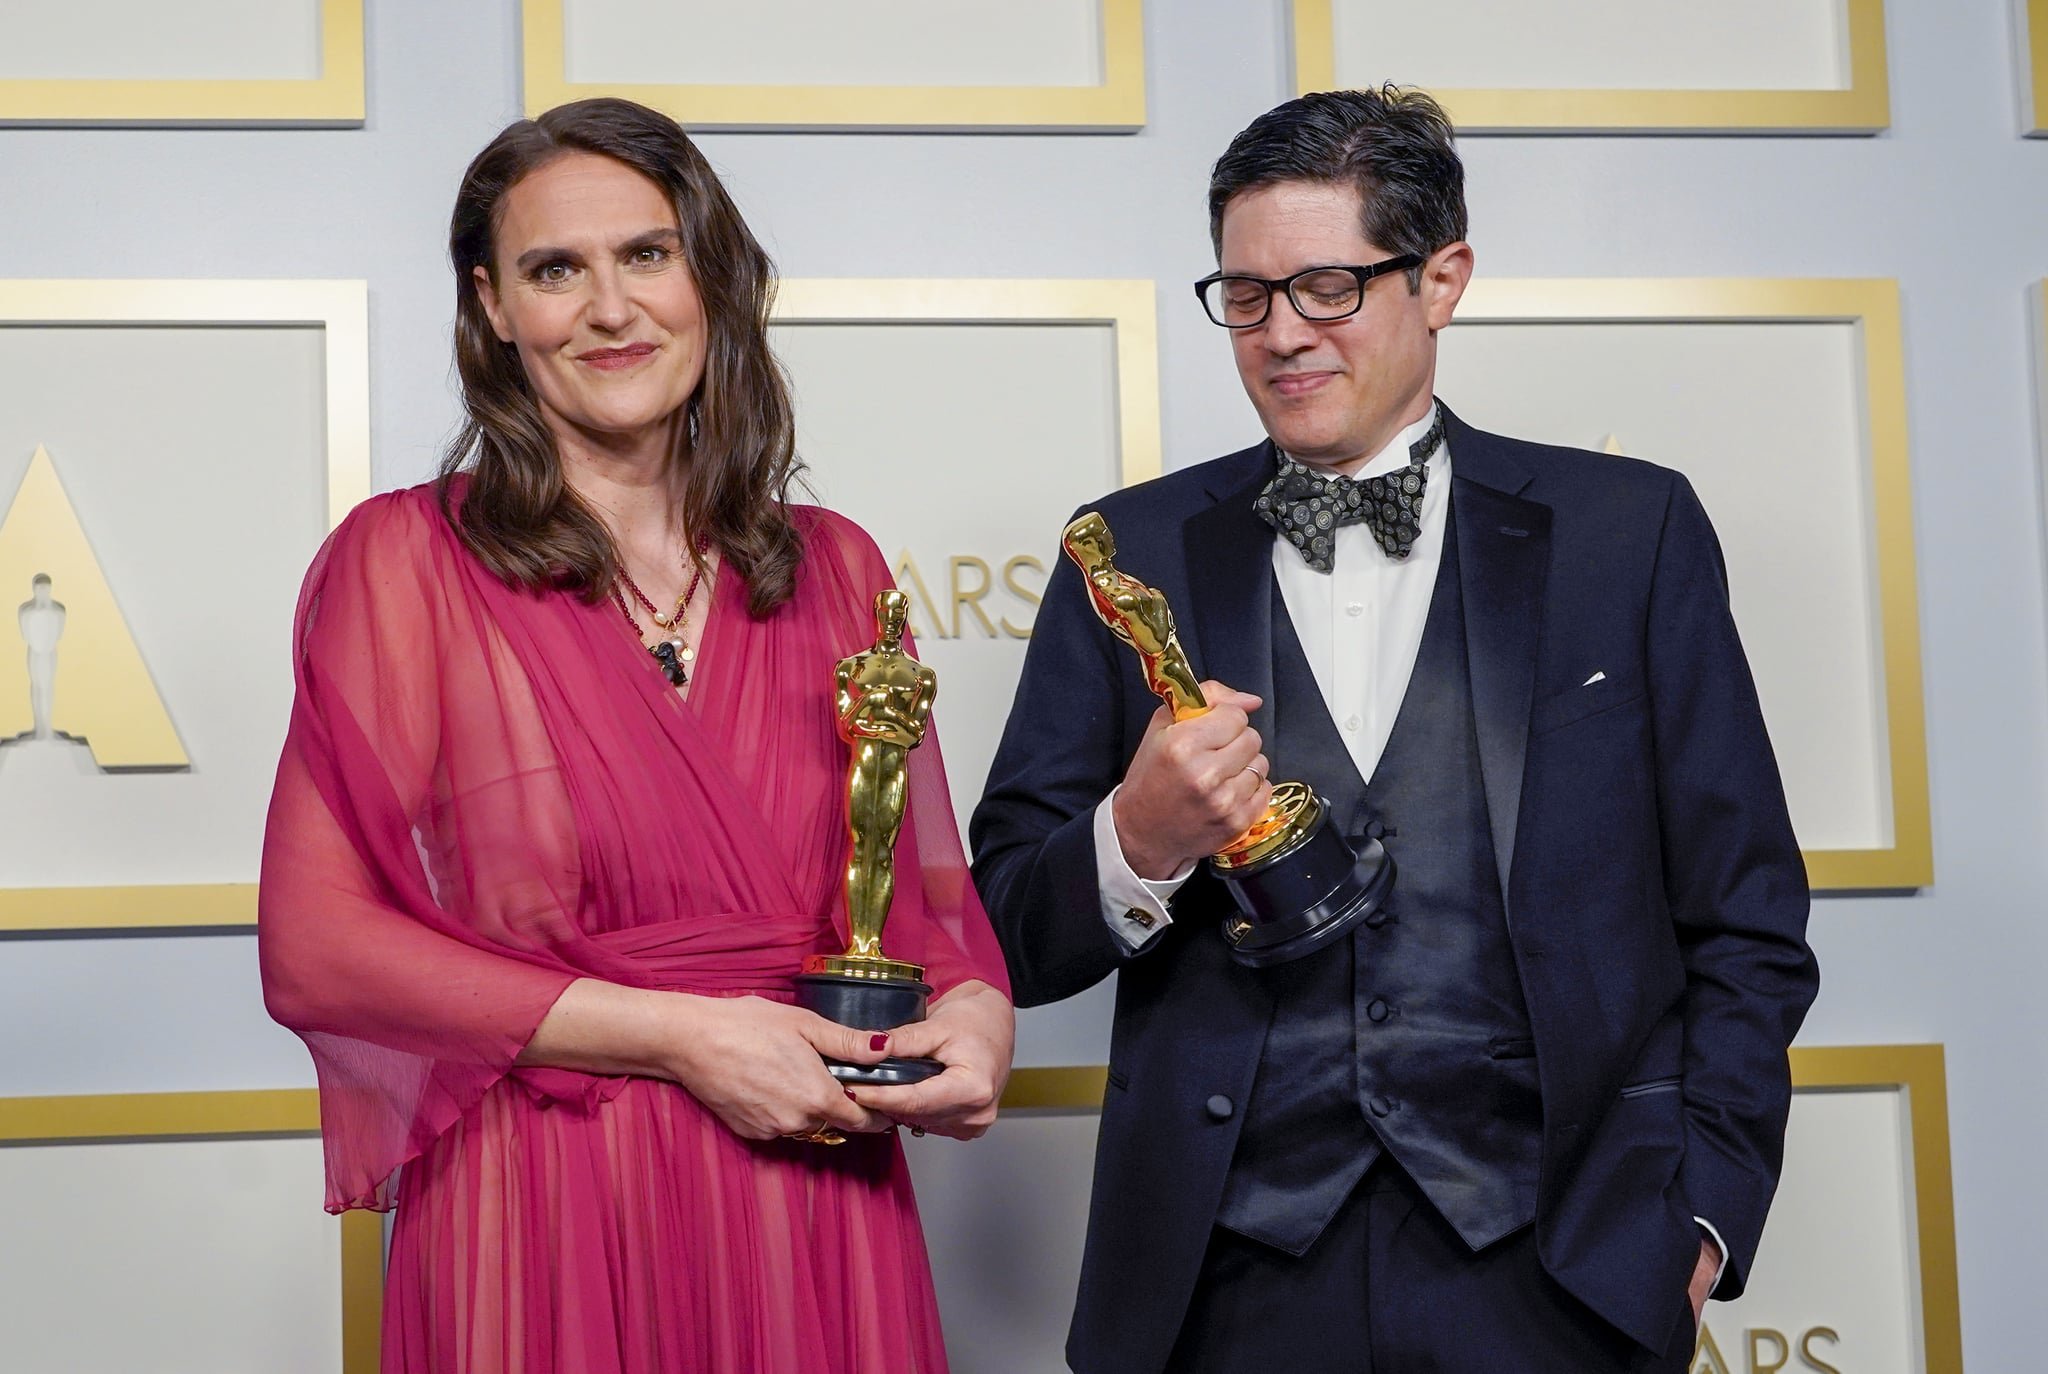 Alice Doyard and Anthony Giacchino at the 2021 Oscars | What an Evening!  See the Very Best Photos From This Year's Oscars Right Here | POPSUGAR  Celebrity Photo 21